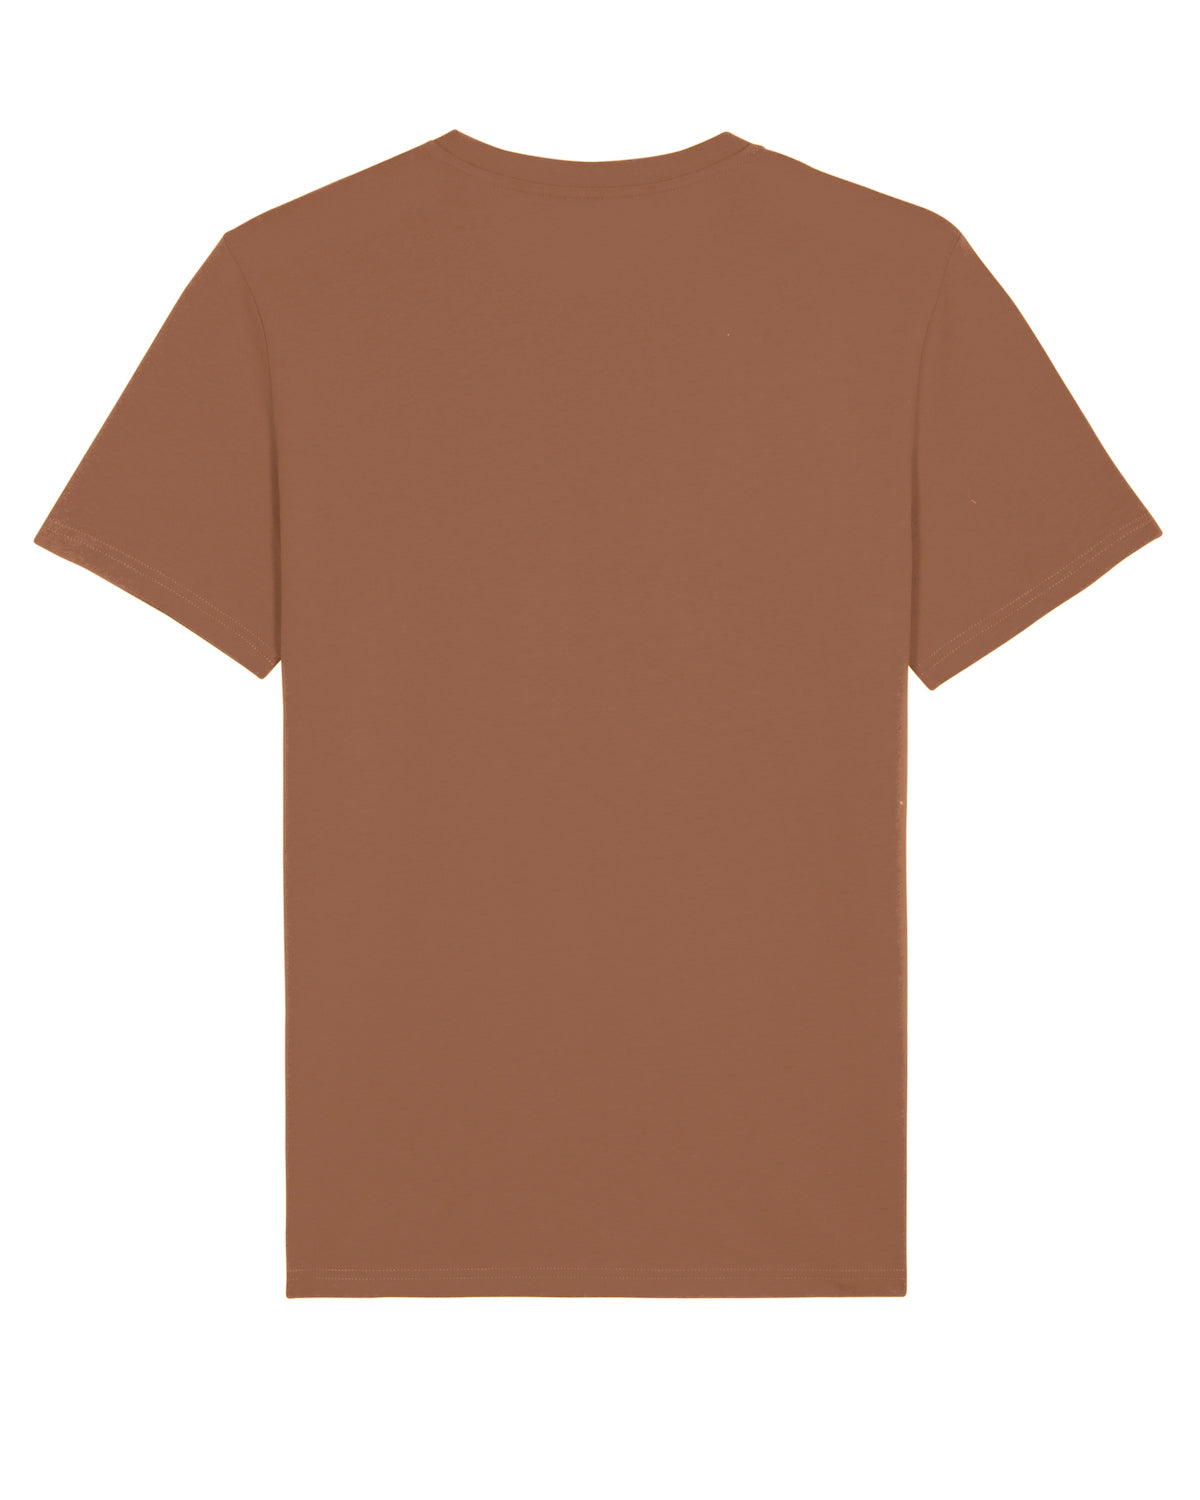 T-shirt Brown - Respire l'amour - Mood Clothing